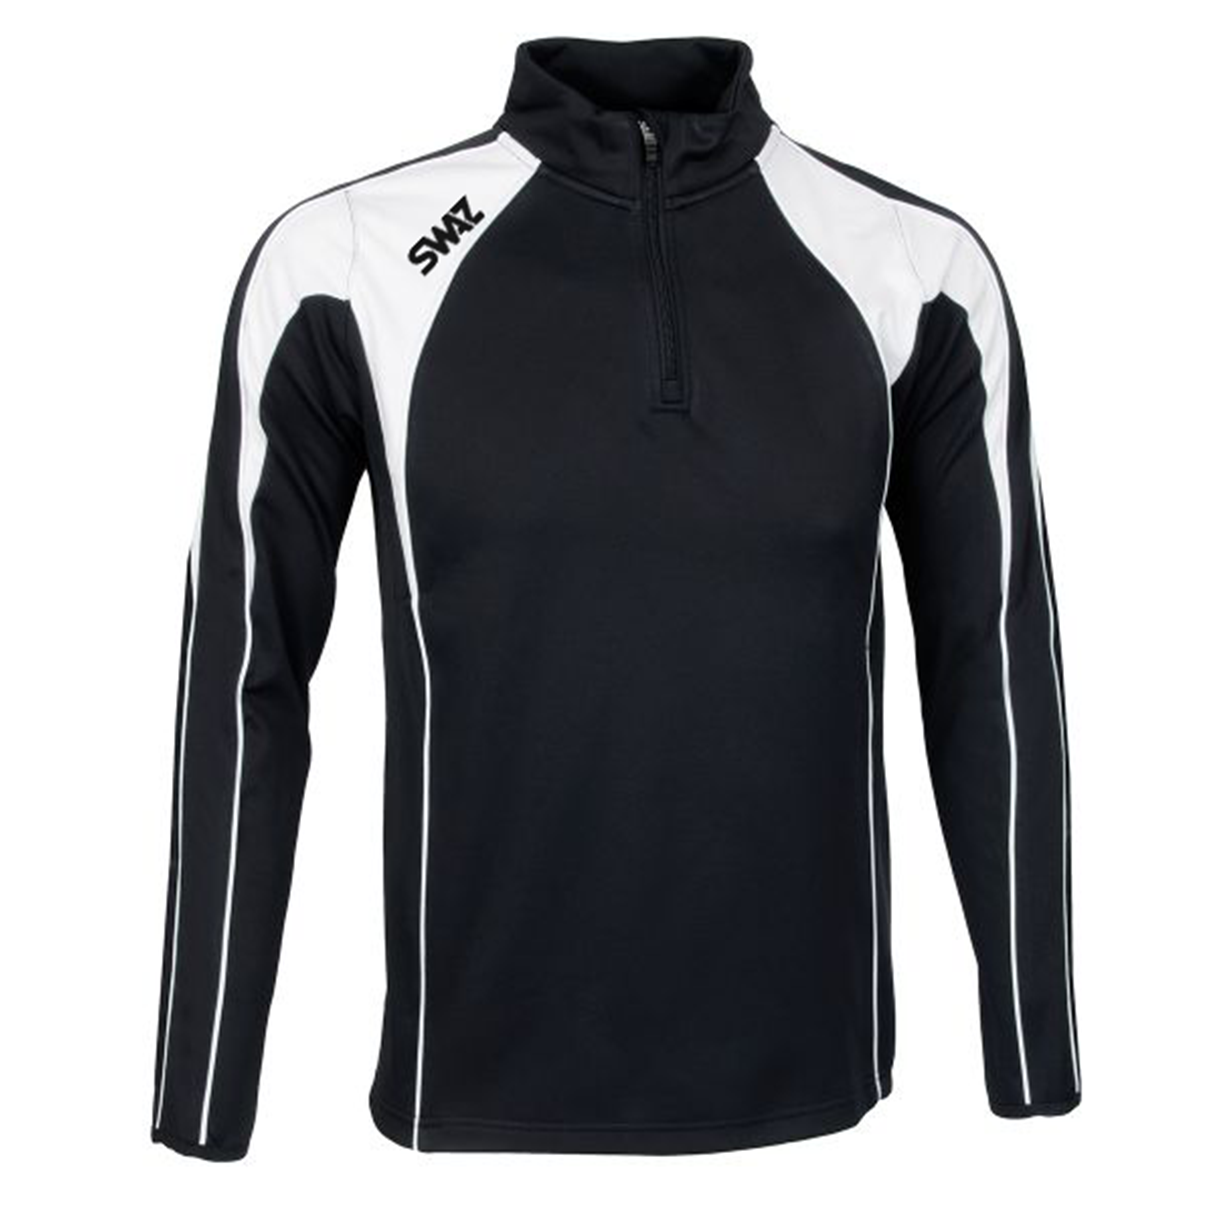 SWAZ Premier 1/4 Zip Midlayer Top – Black/White